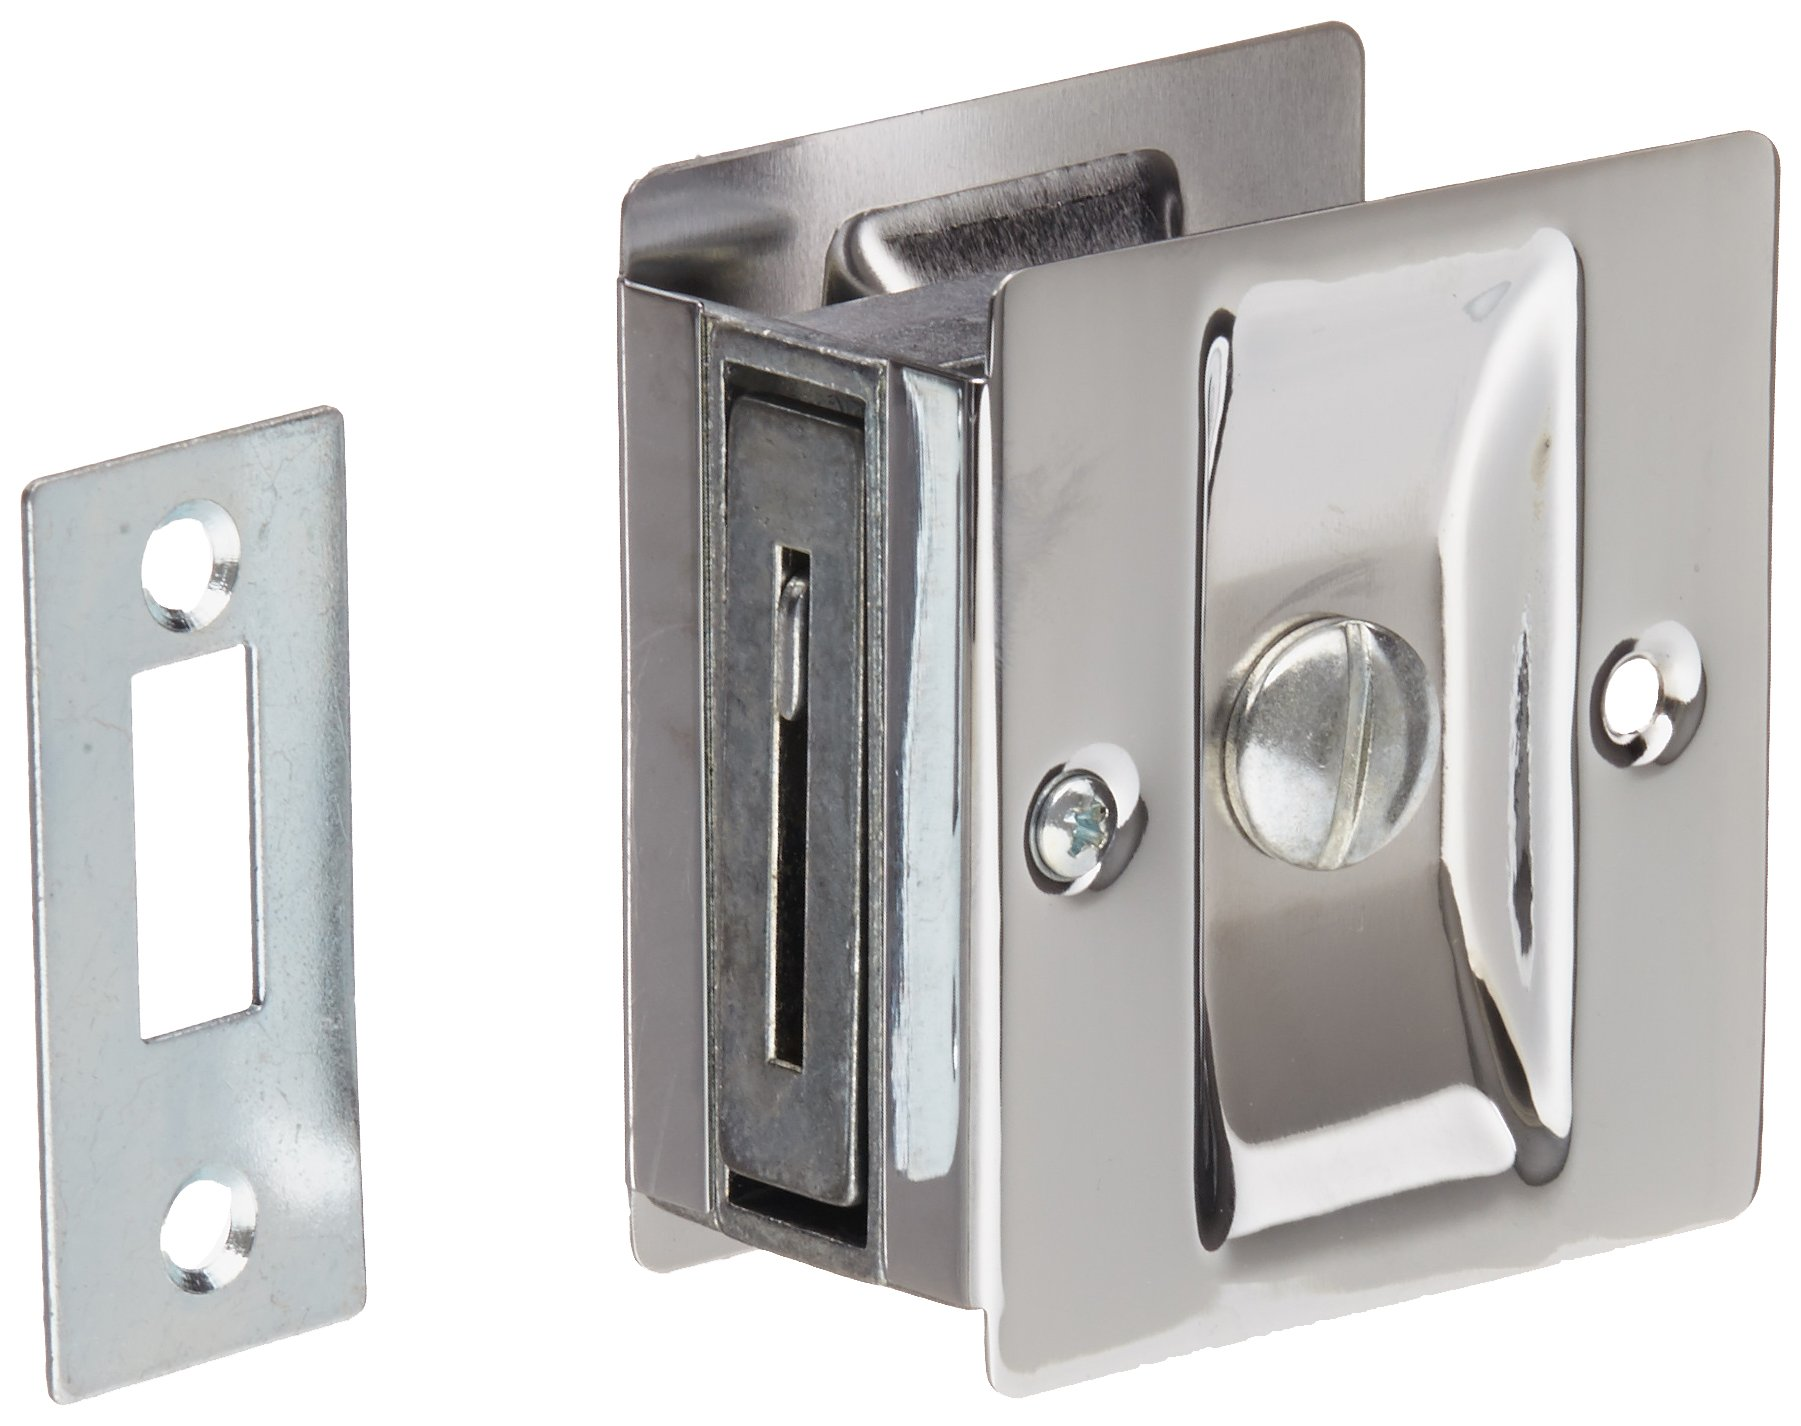 Rockwood 891.26 Brass Pocket Door Privacy Latch, 2-1/2'' Width x 2-3/4'' Height, Polished Chrome Plated Finish